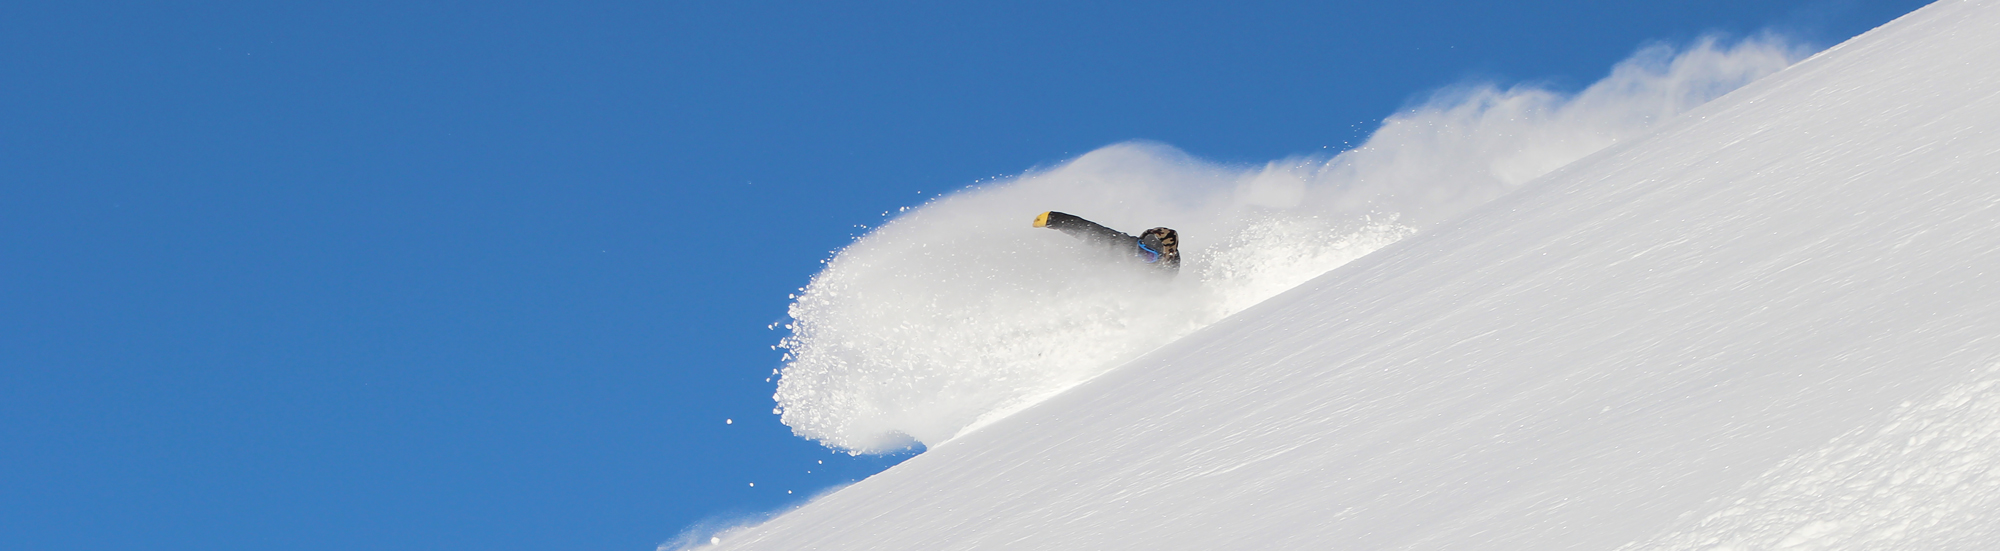 Cardrona-NZ-Powder-Snowboarder